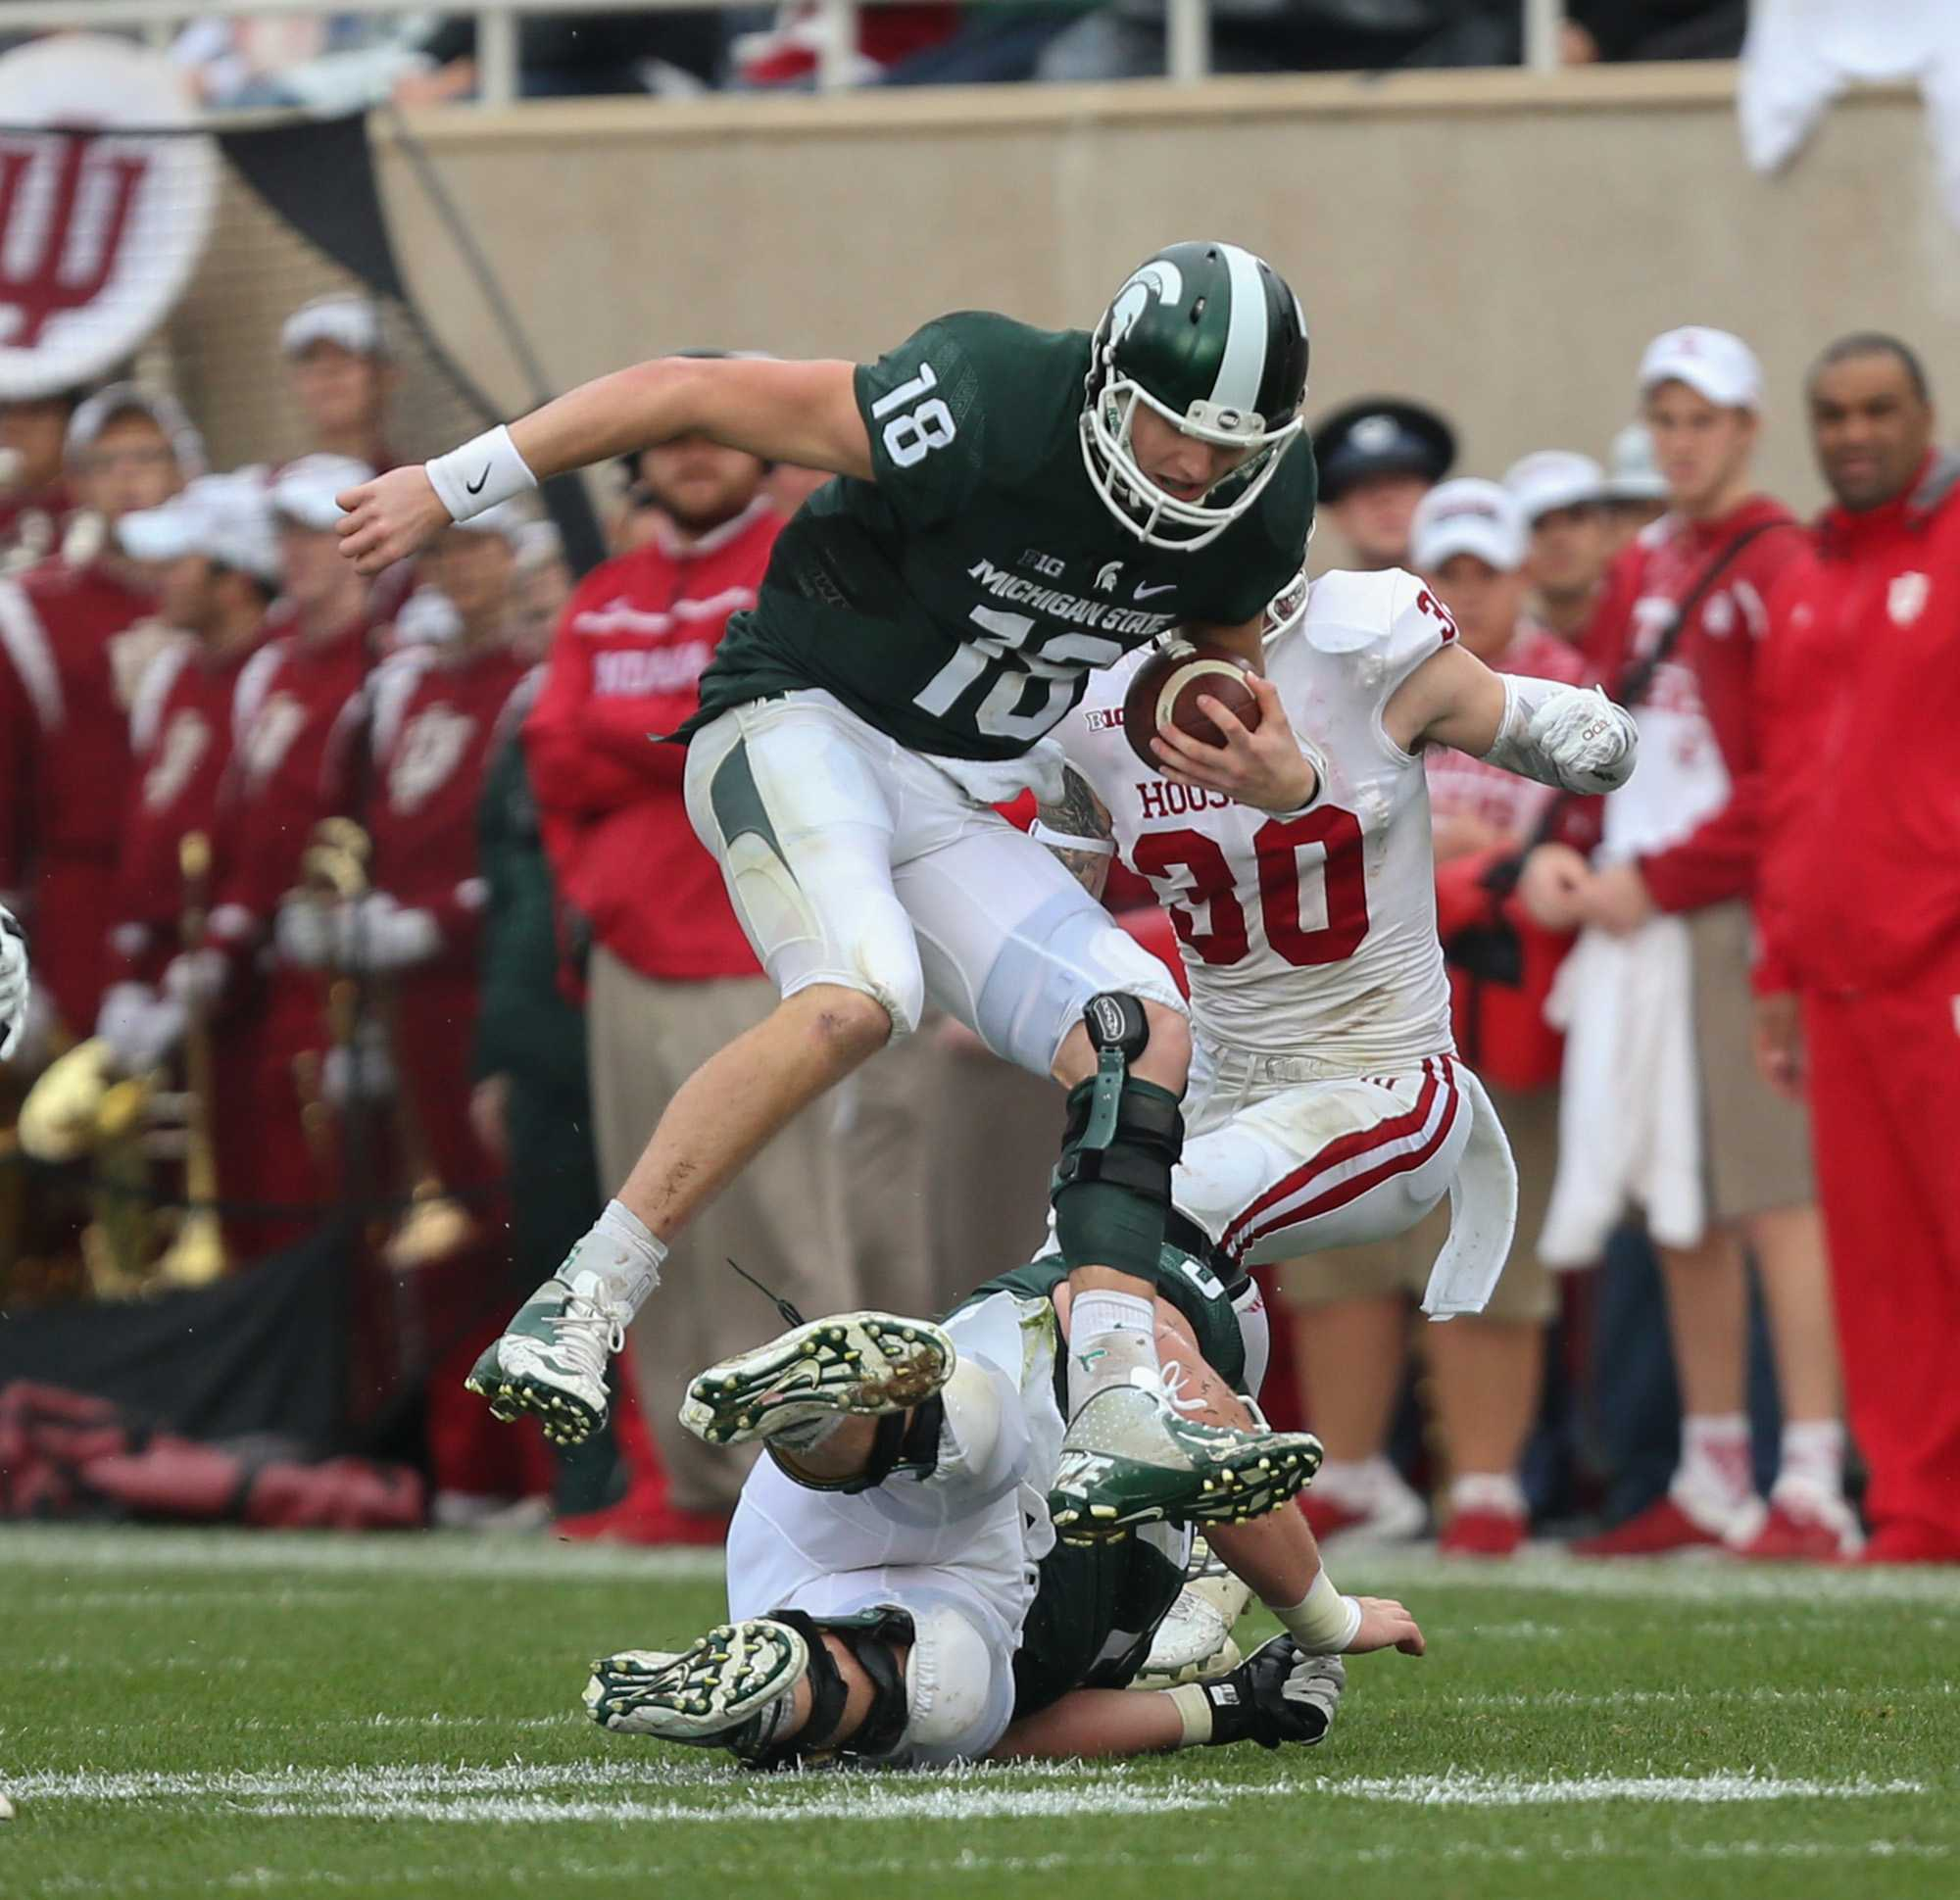 Michigan+State%E2%80%99s+run+of+good+luck+%E2%80%93+and+now+its+playoff+chances+%E2%80%93+was+crushed+against+Nebraska%2C+and+that+people+defeat+should+serve+as+a+warning+to+the+other+playoff+contenders+on+the+dangers+of+overlooking+opponents+whether+ranked+or+unranked.